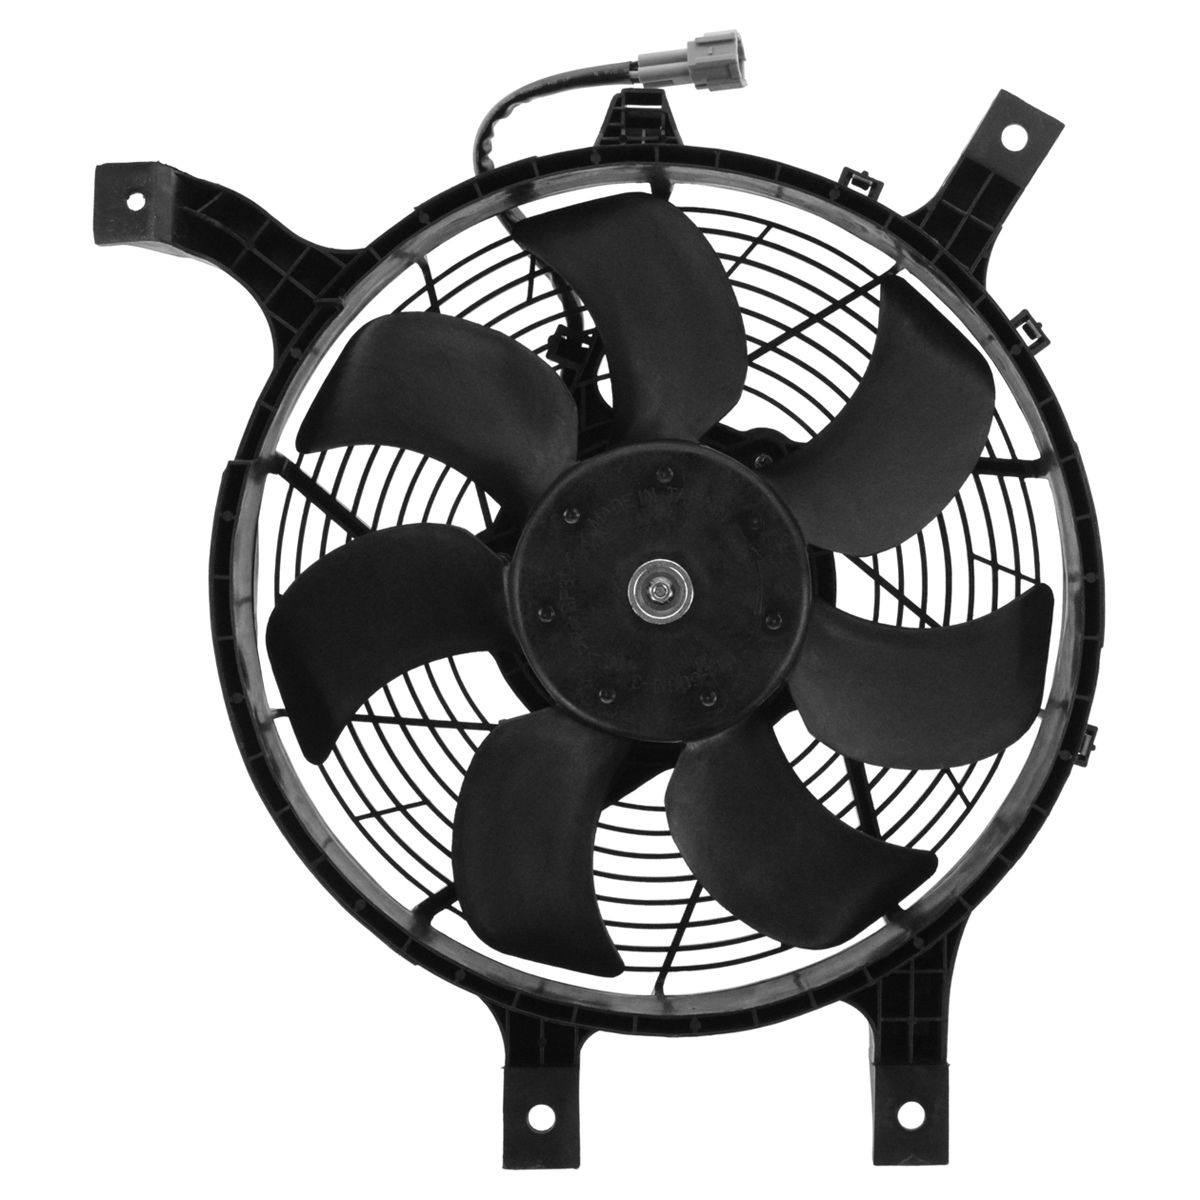 Ac ac condenser cooling fan assembly w motor for nissan frontier am 612317711 131110816056 ul